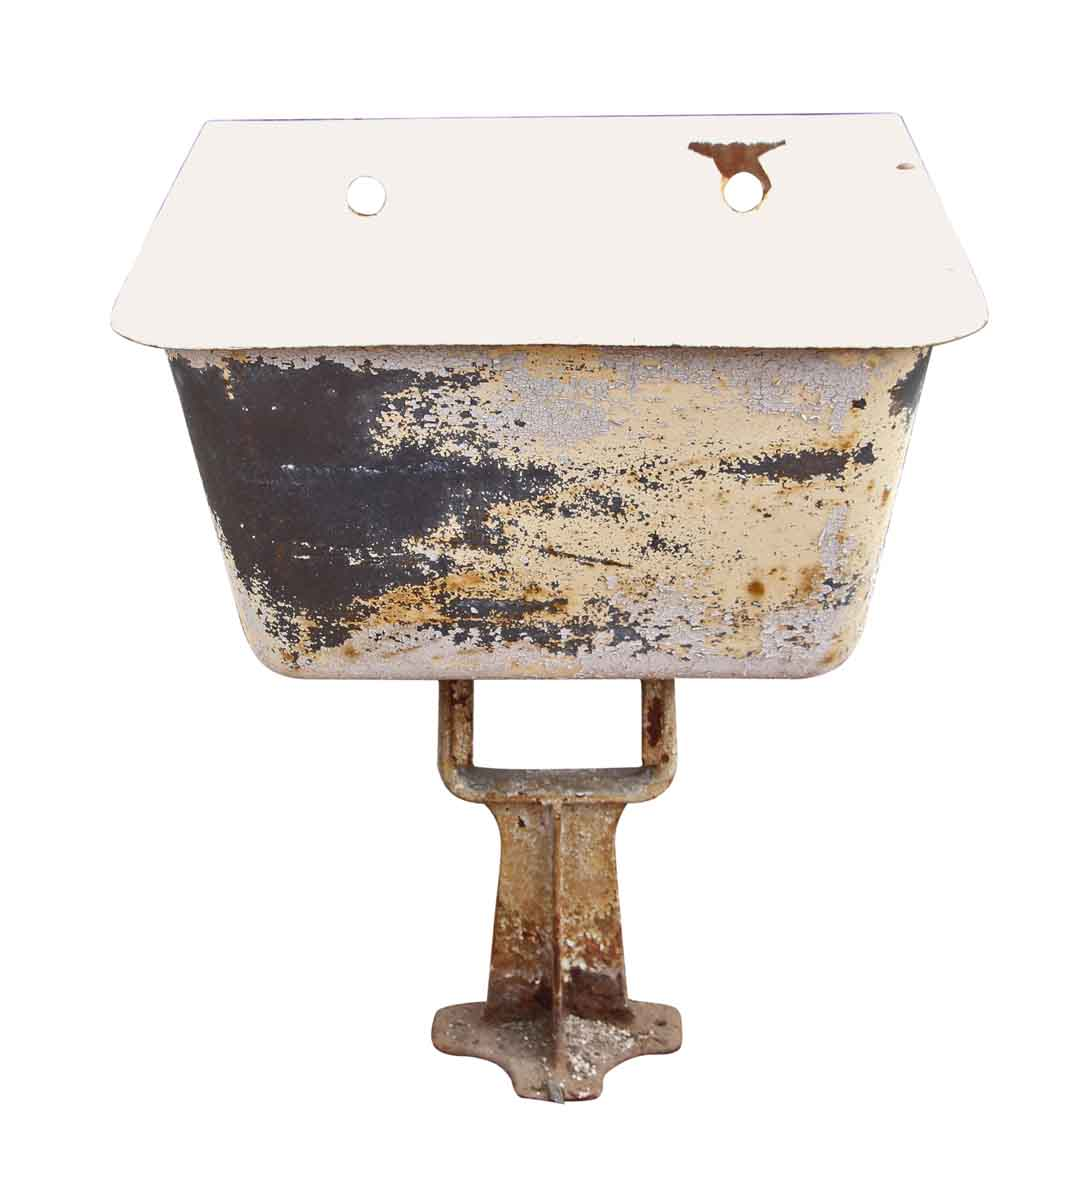 Enamel Over Iron Utility Sink On A Cast Iron Pedestal Olde Good Things